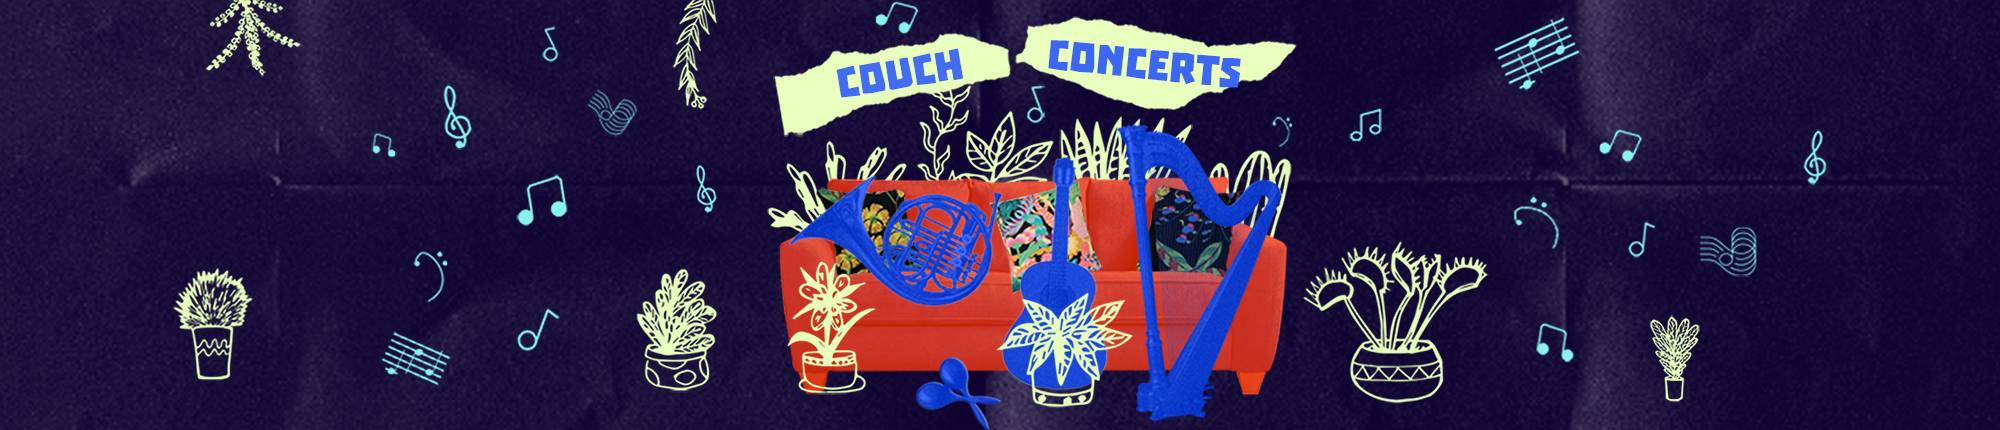 couch concerts